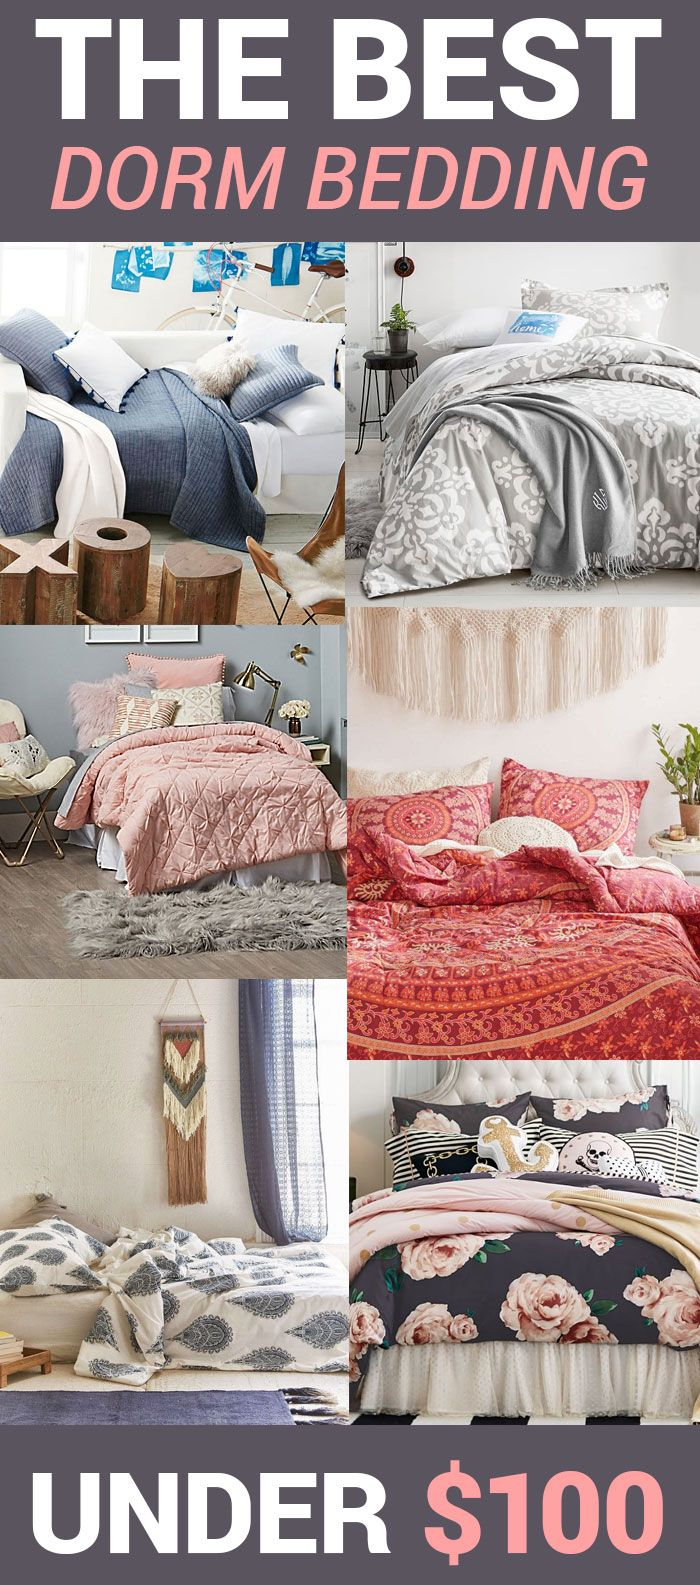 The Best Dorm Bedding Under $100